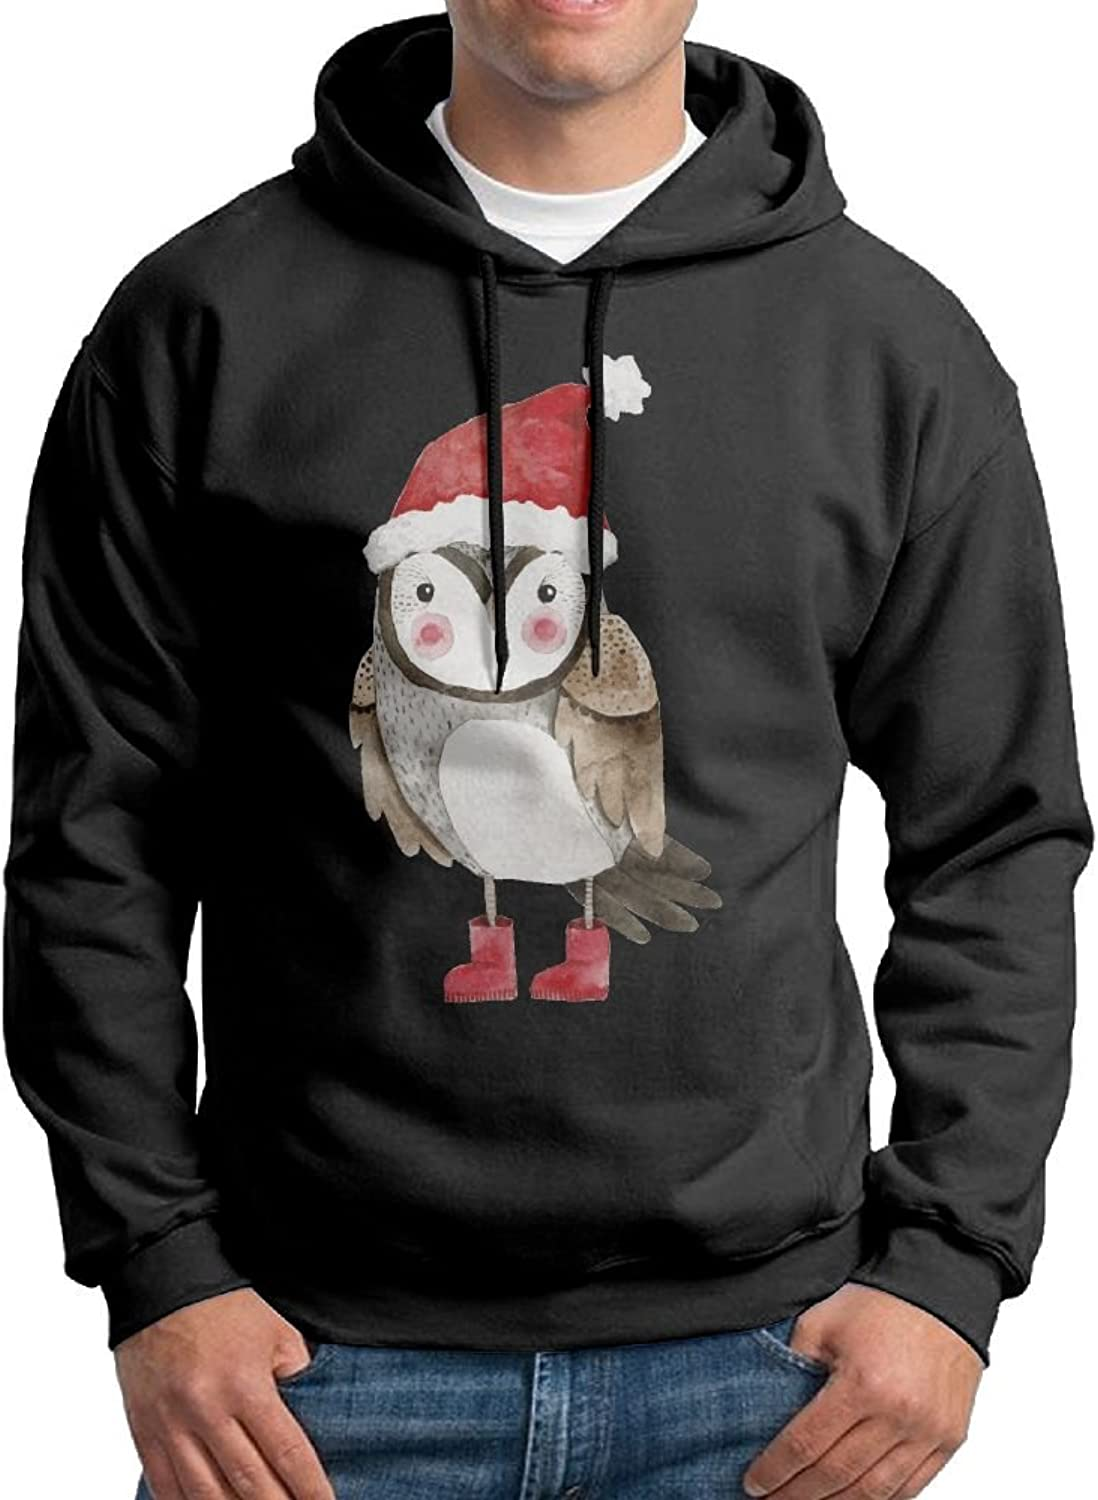 Fashion Men's Athletic Christmas Owl Print Soft & Cozy Drawstring Sweatshirt Without Pocket Hoody Black